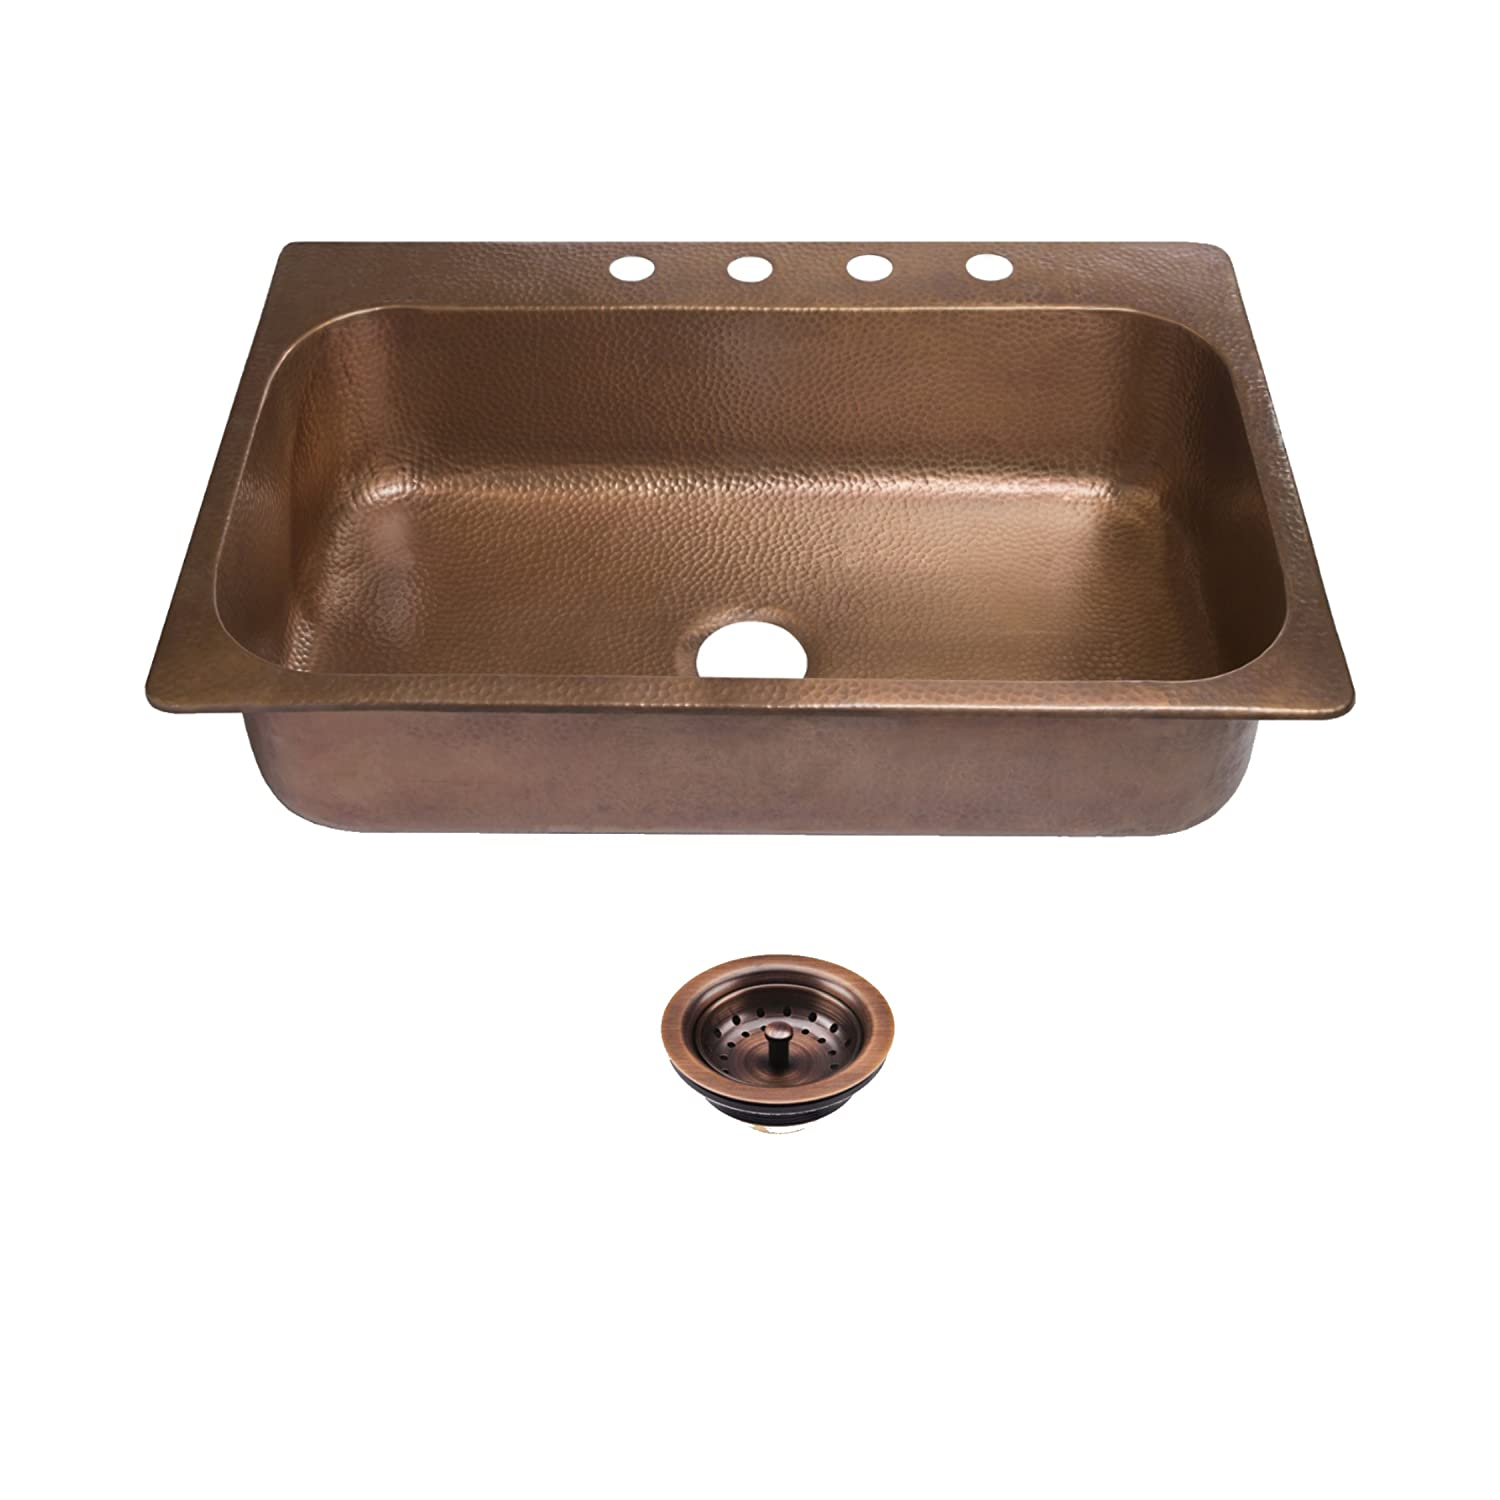 "Sinkology SK101-33AC4-AMZ-B Angelico 4-Hole Drop Kit with Strainer Drain Copper Kitchen Sink 33 x 22 x 8"", Antique"